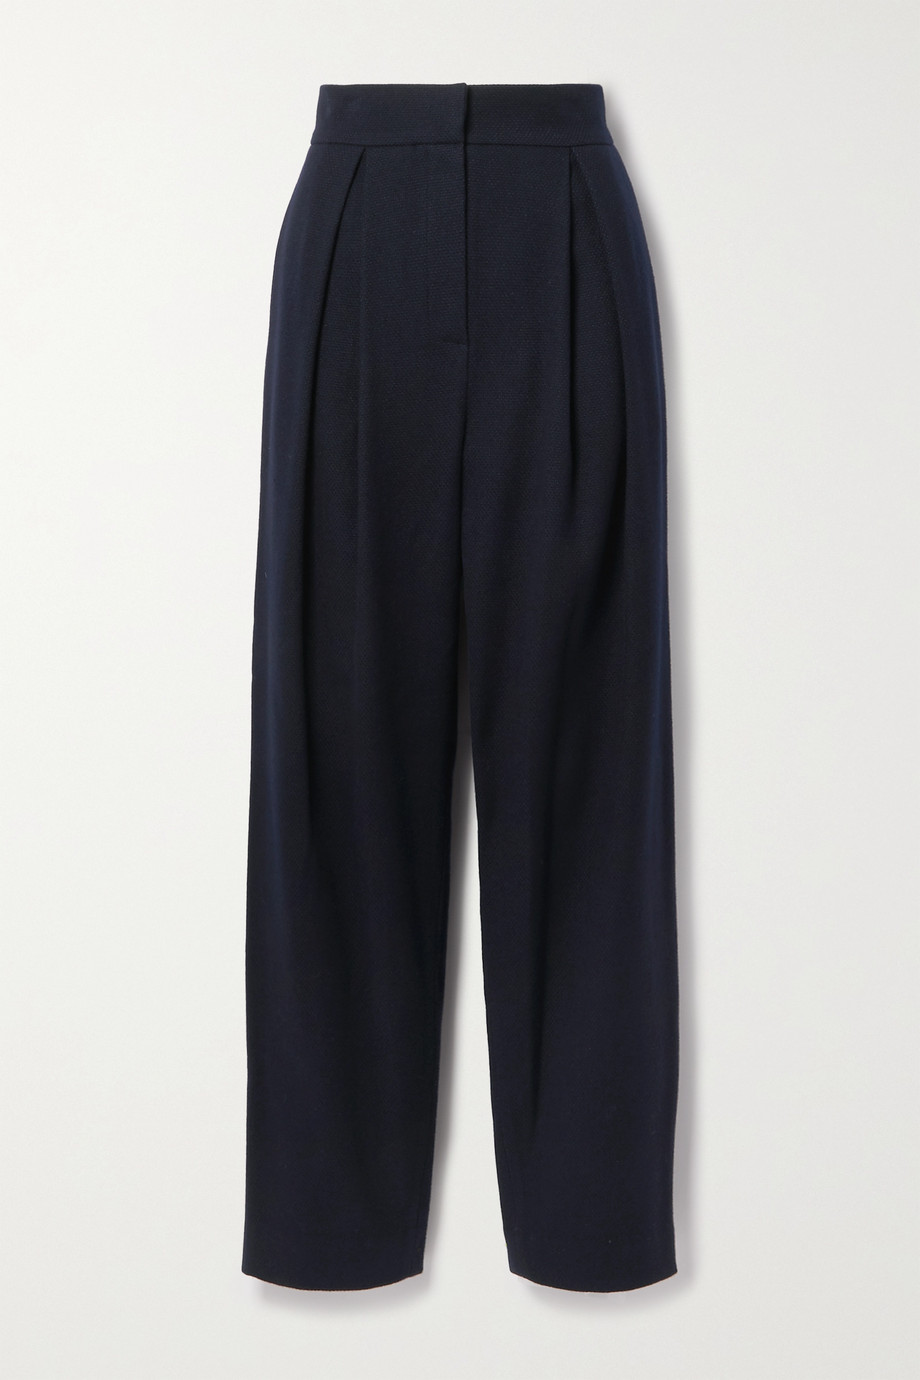 LE 17 SEPTEMBRE Pleated wool tapered pants